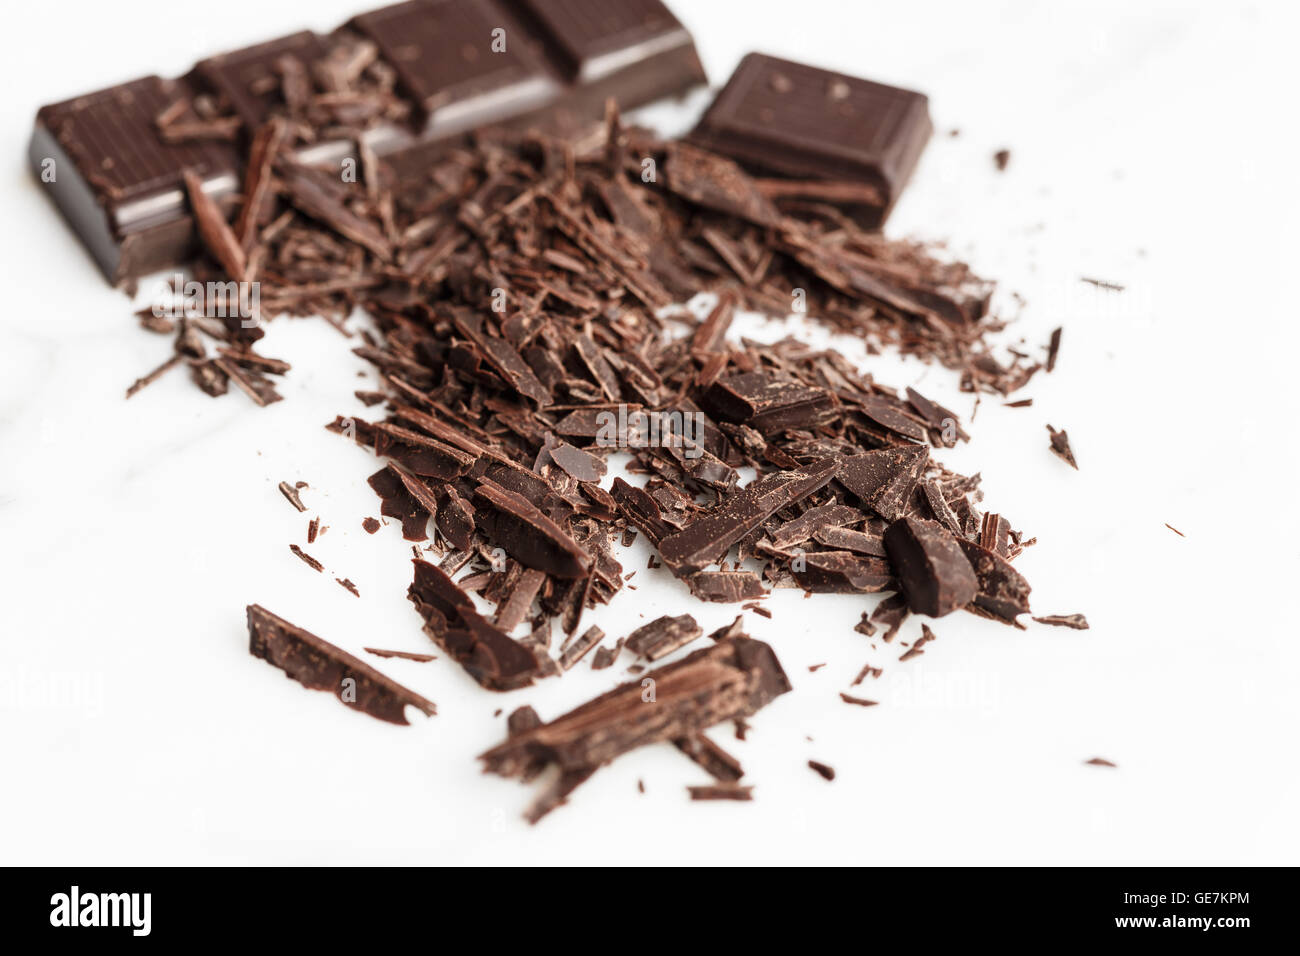 chocolate bar and shavings on white background - Stock Image